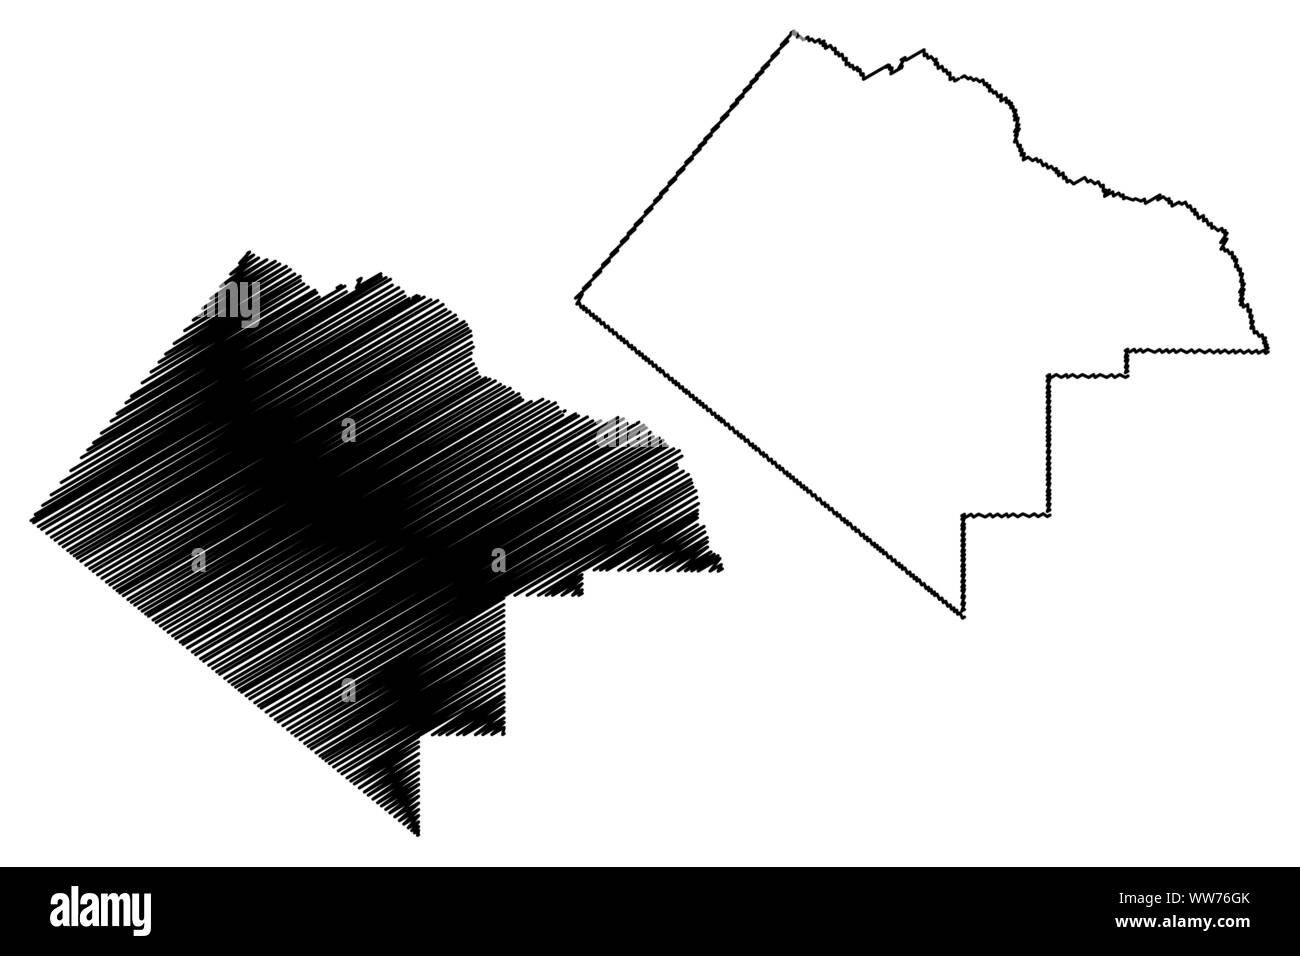 Pecos County, Texas (Counties in Texas, United States of ...